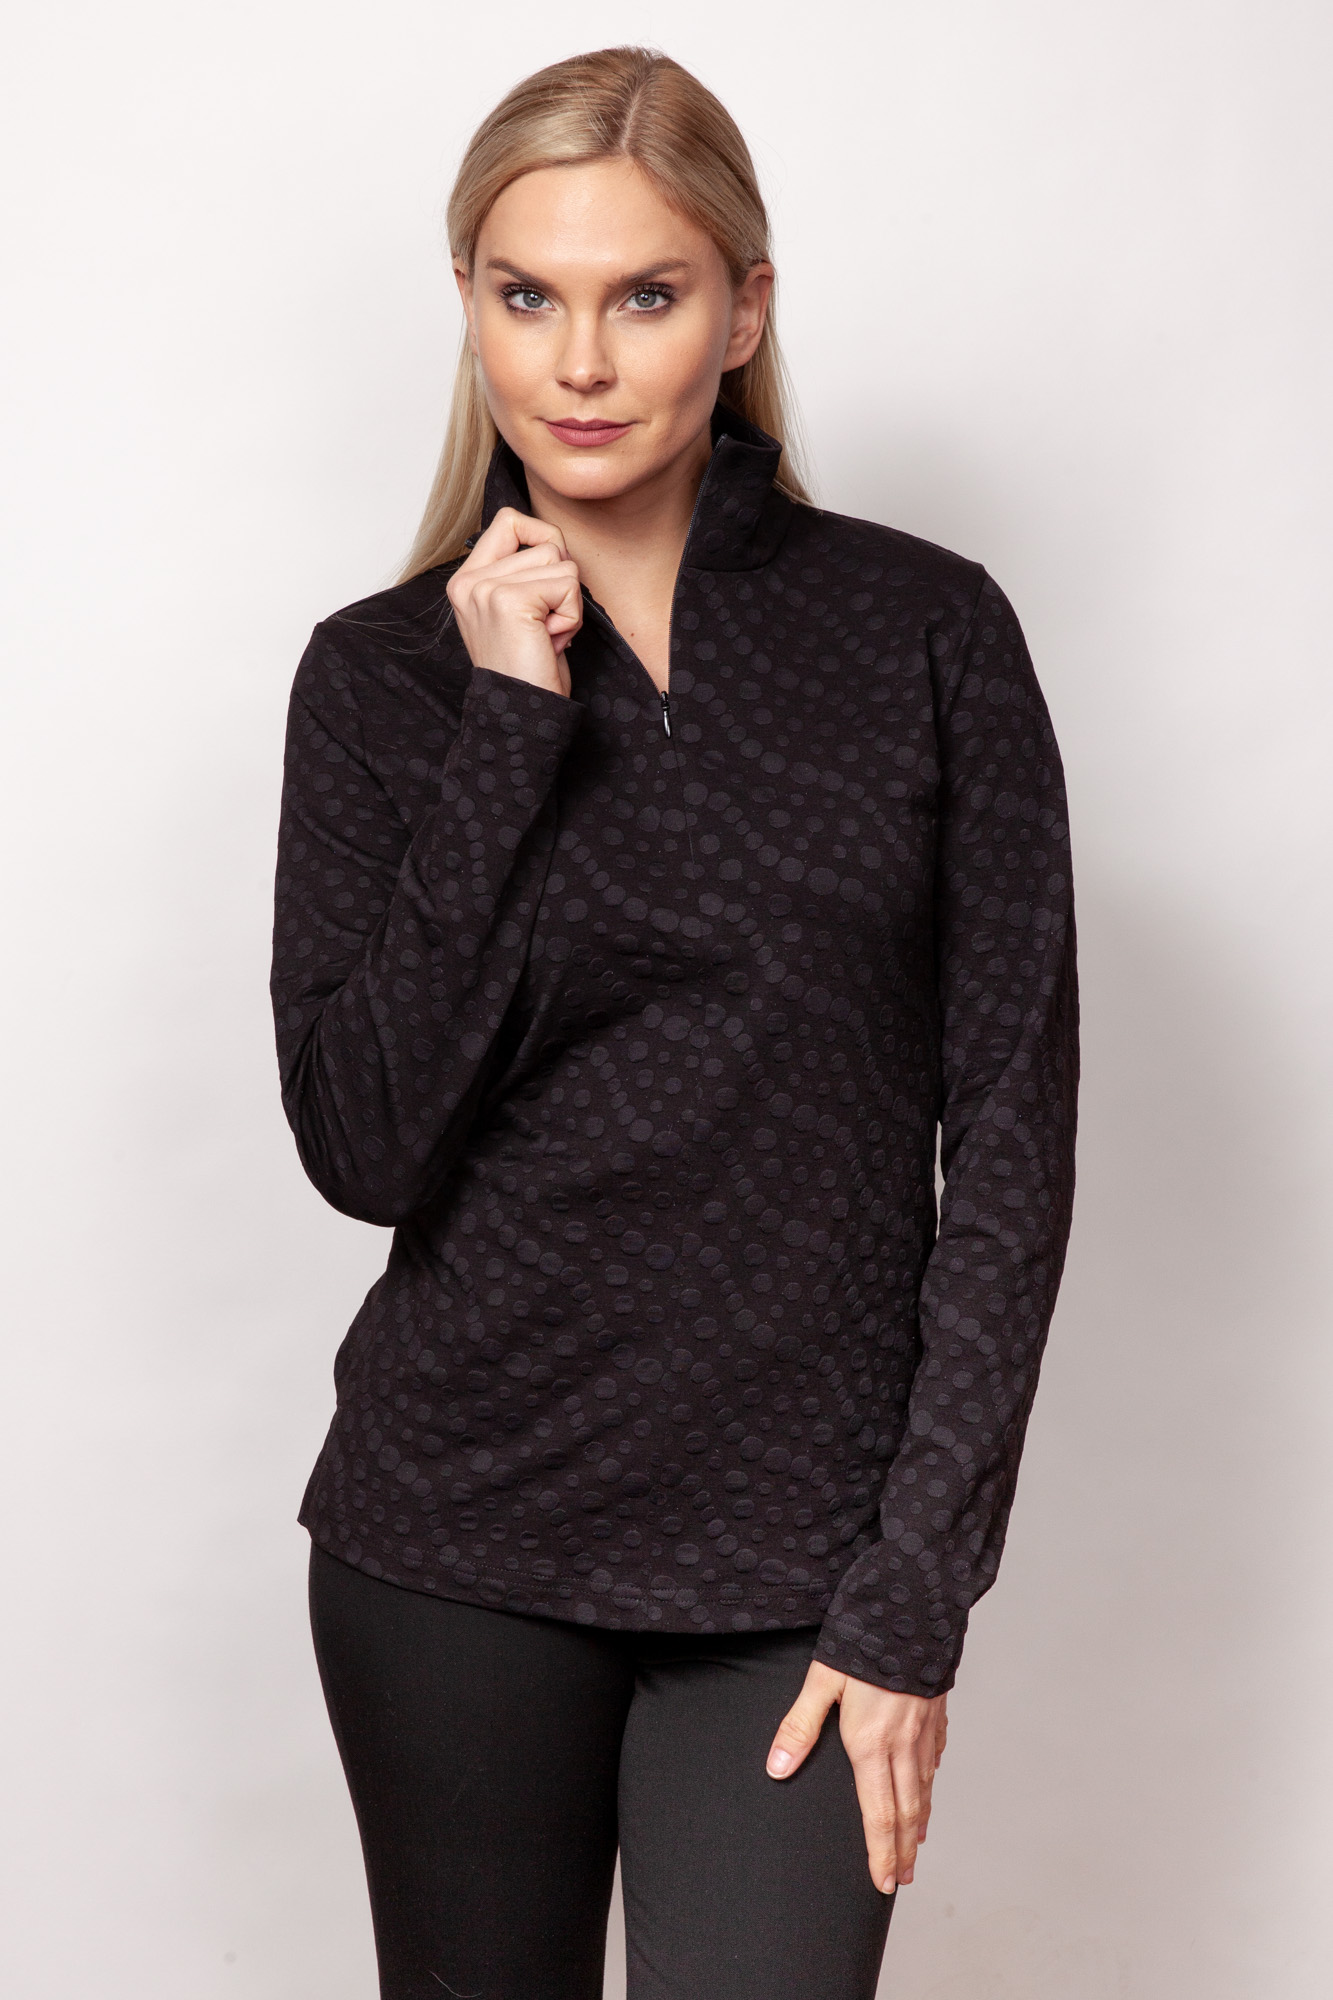 Copy of Style # 48389-19, p11 <br/>Dots Sport Jacq'd <br/>Colors: Black + 4 others